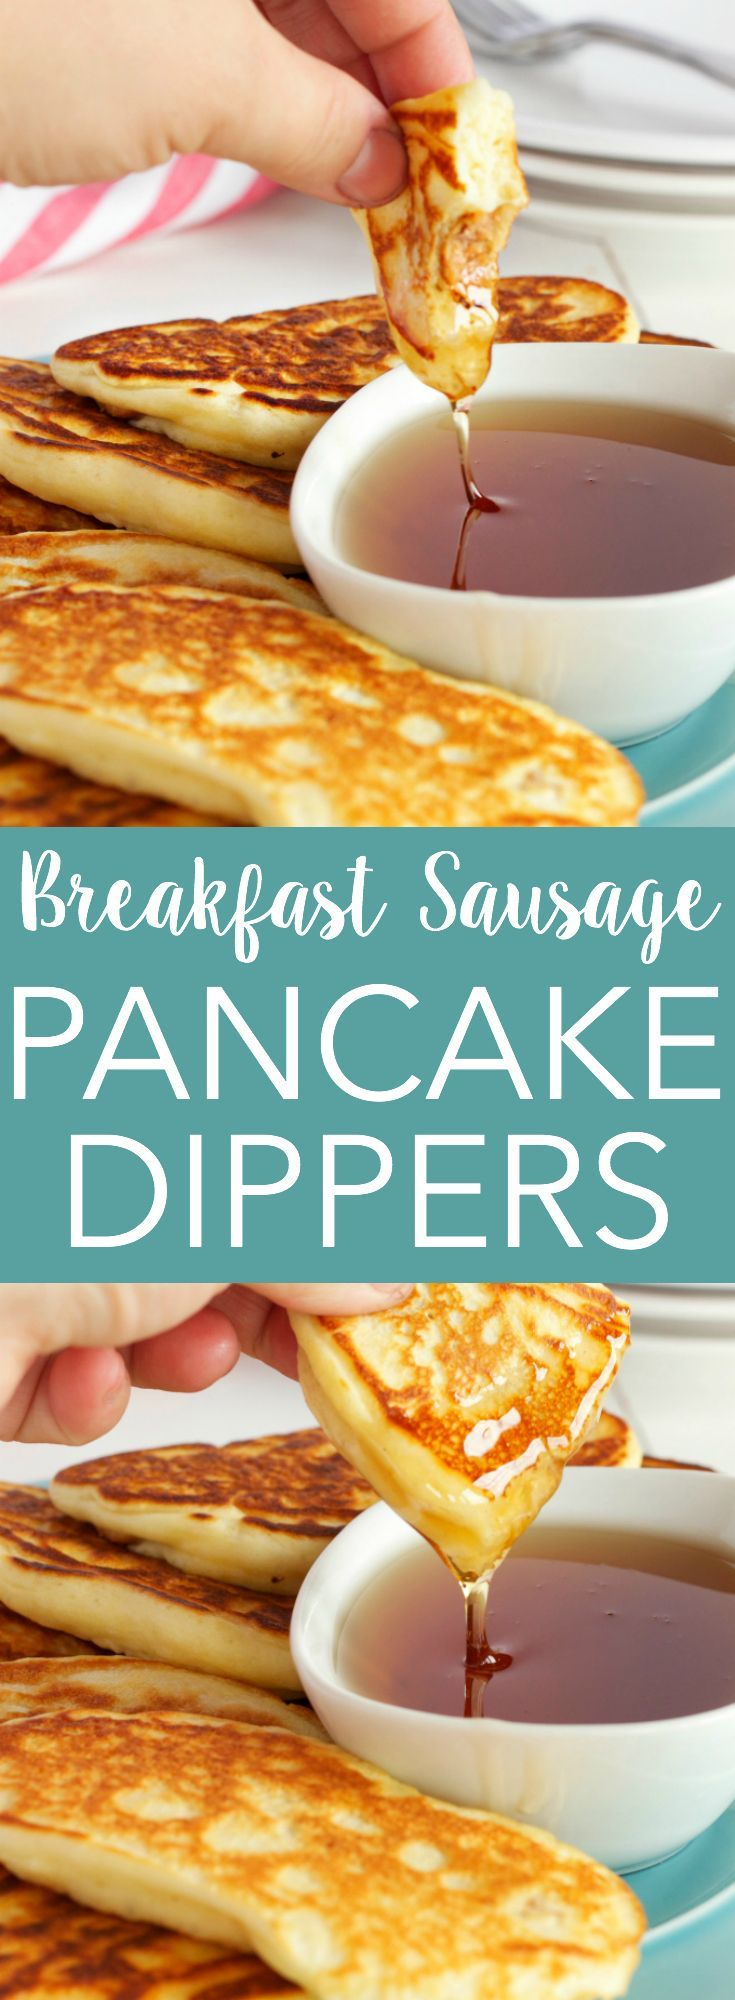 These Breakfast Sausage Pancake Dippers are the perfect breakfast finger food! Recipe from thebusybaker.ca!